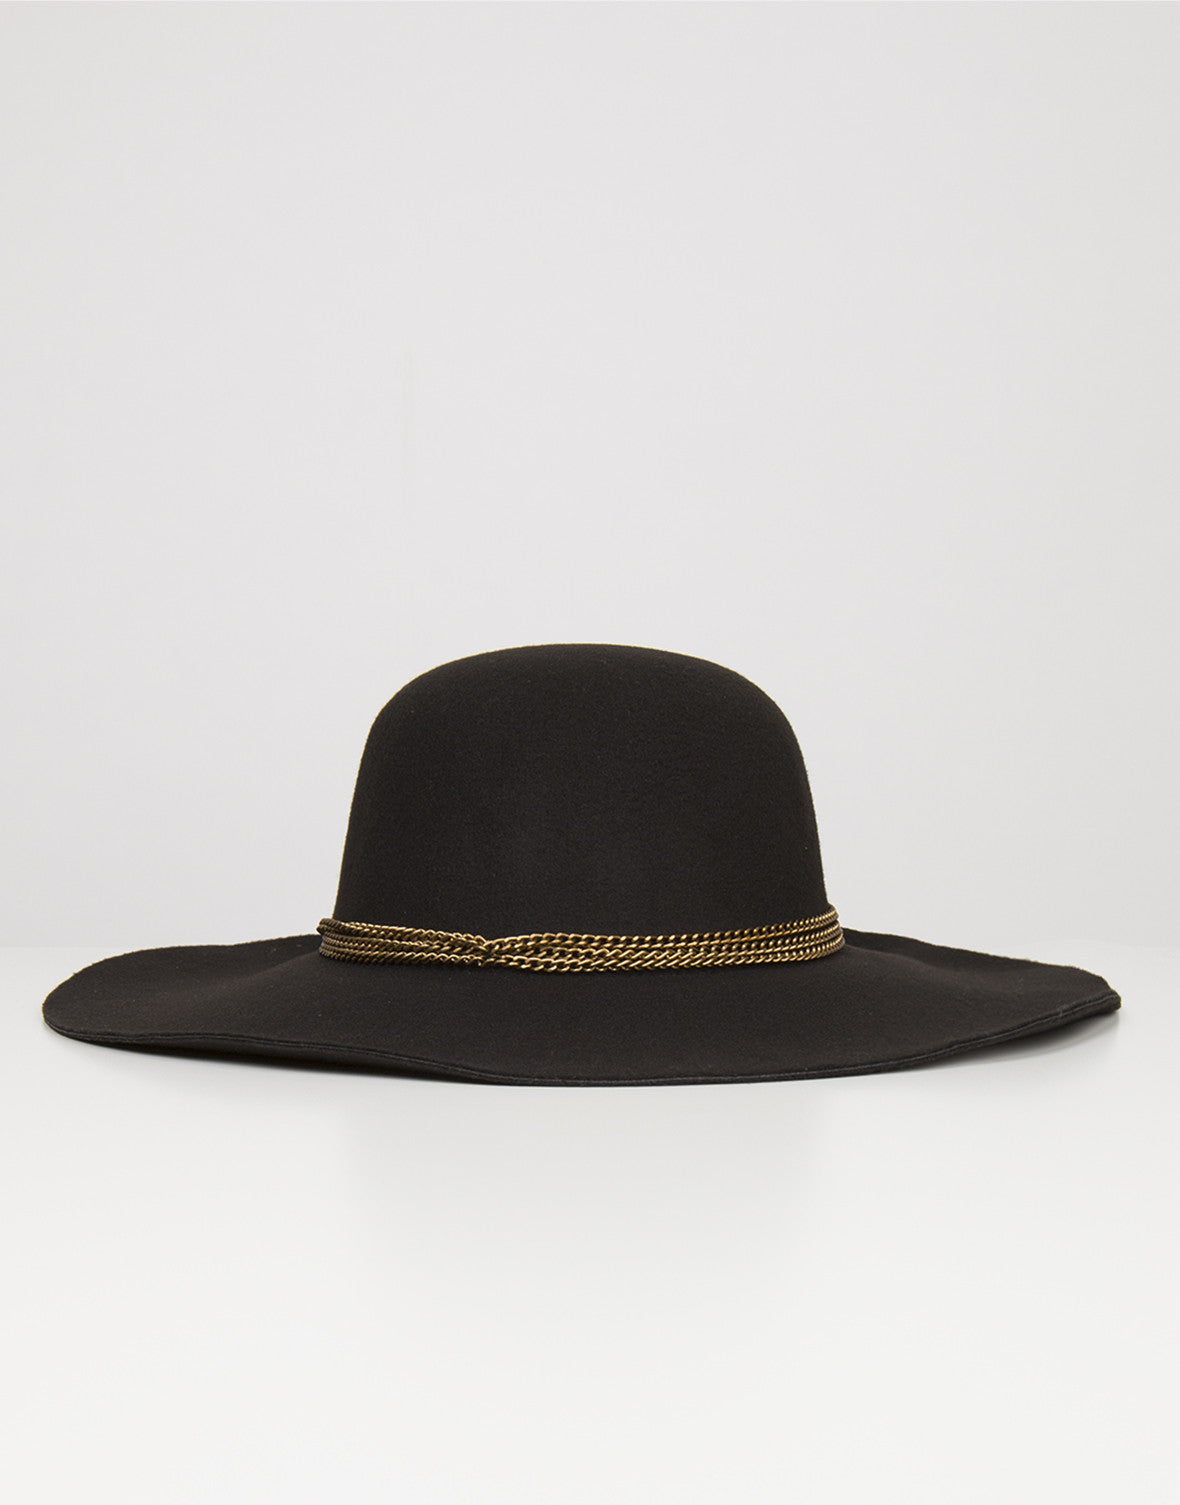 Front View of Chained Floppy Hat